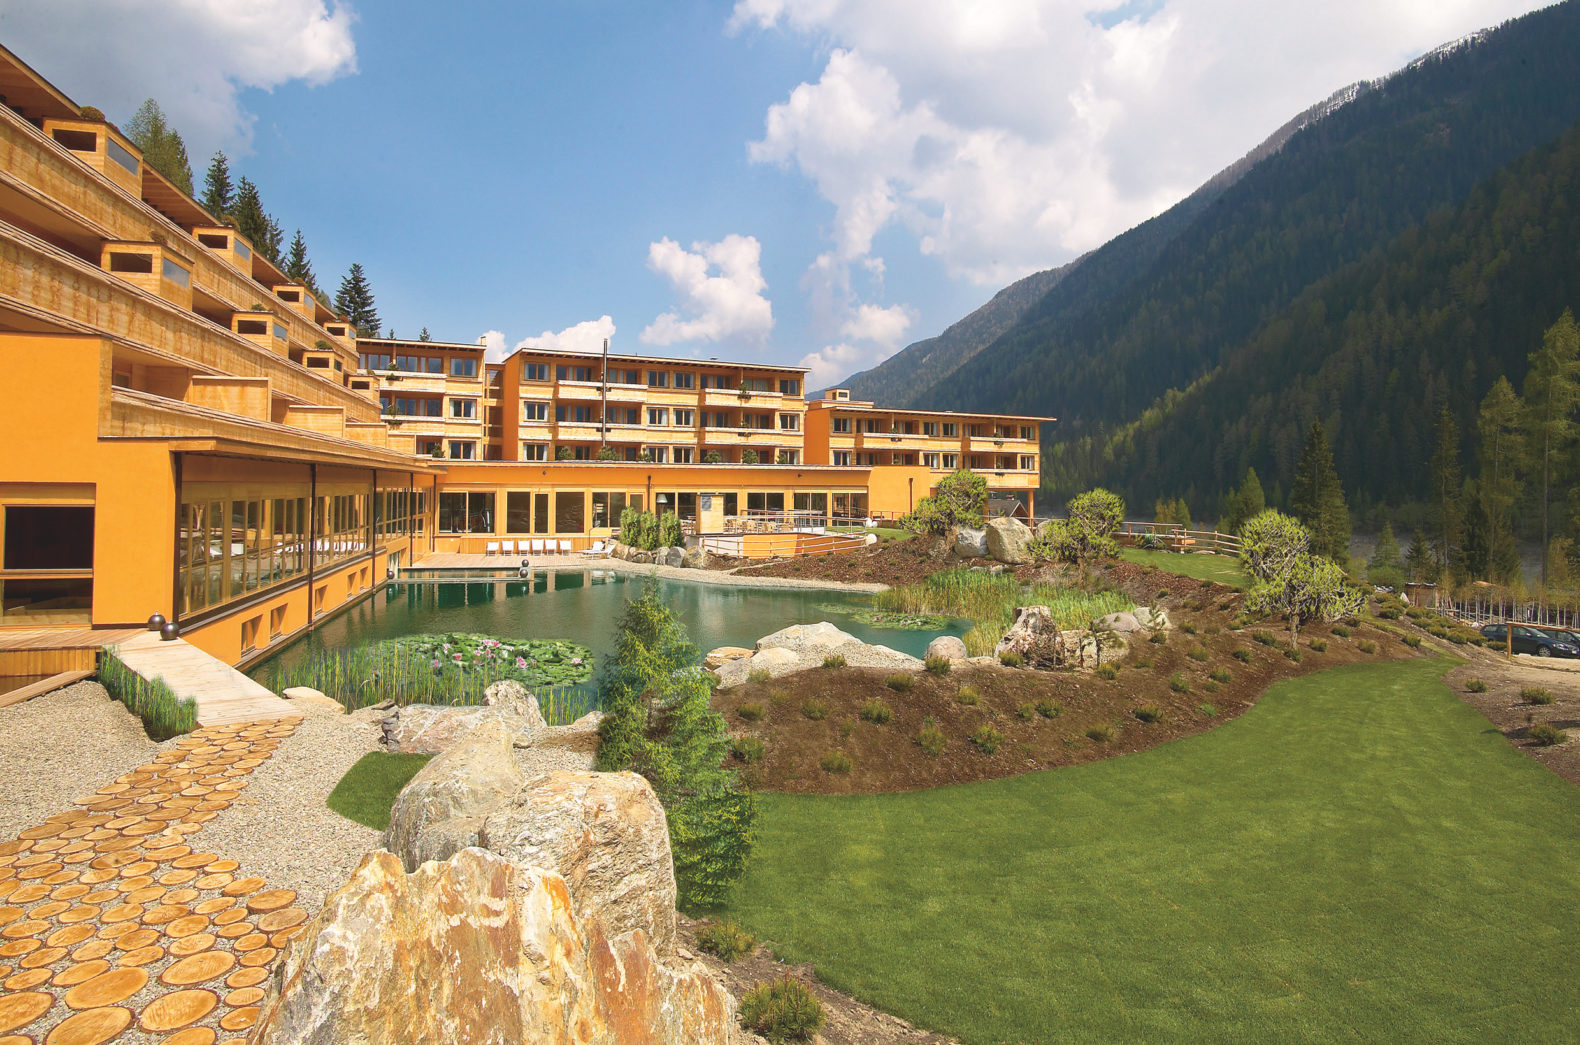 outdoor-view-main-building-beautiful-landscape-arosea-life-balance-hotel-italy